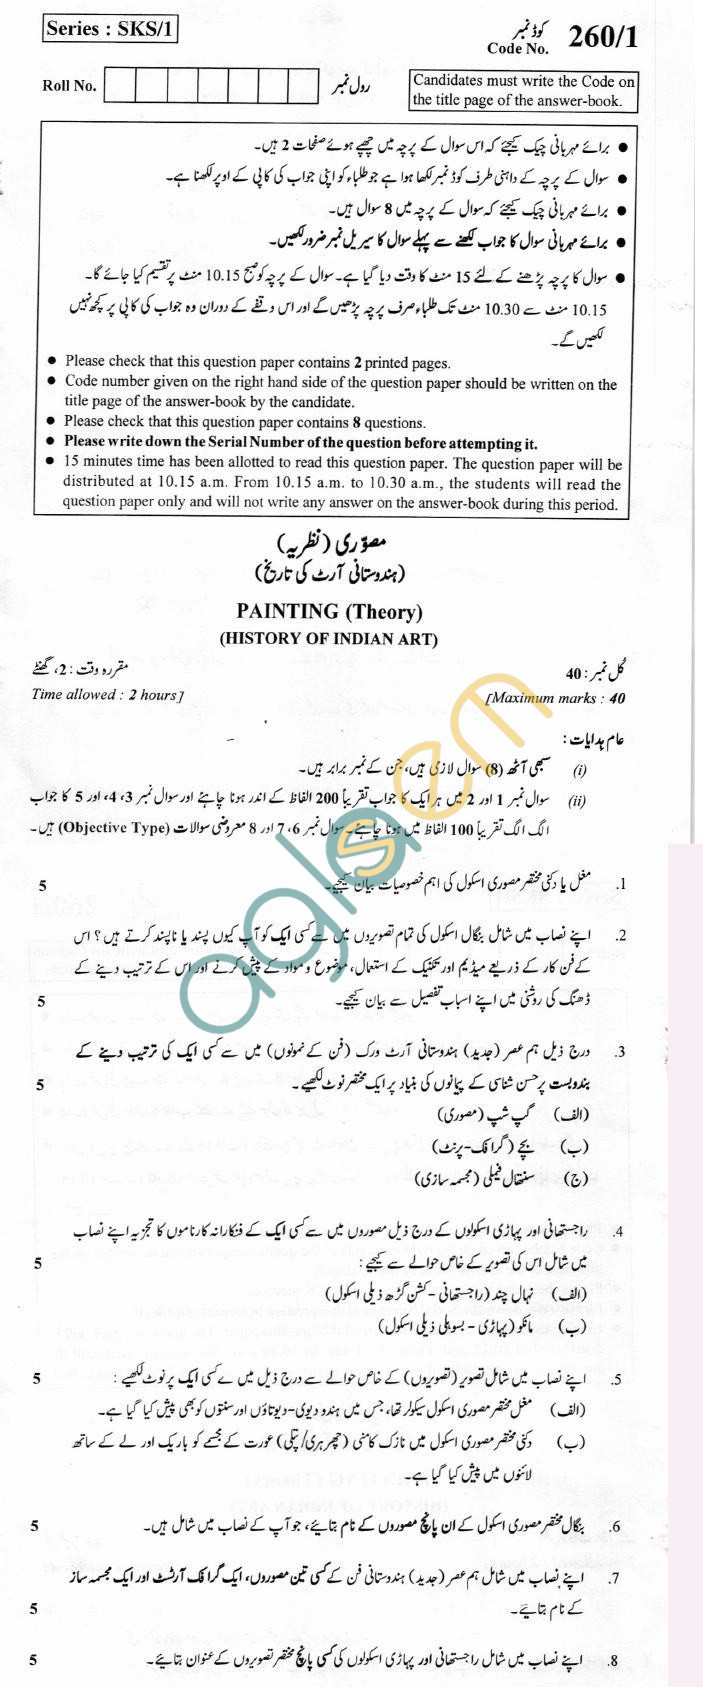 CBSE Board Exam 2013 Class XII Question Paper - Painting (Urdu version)